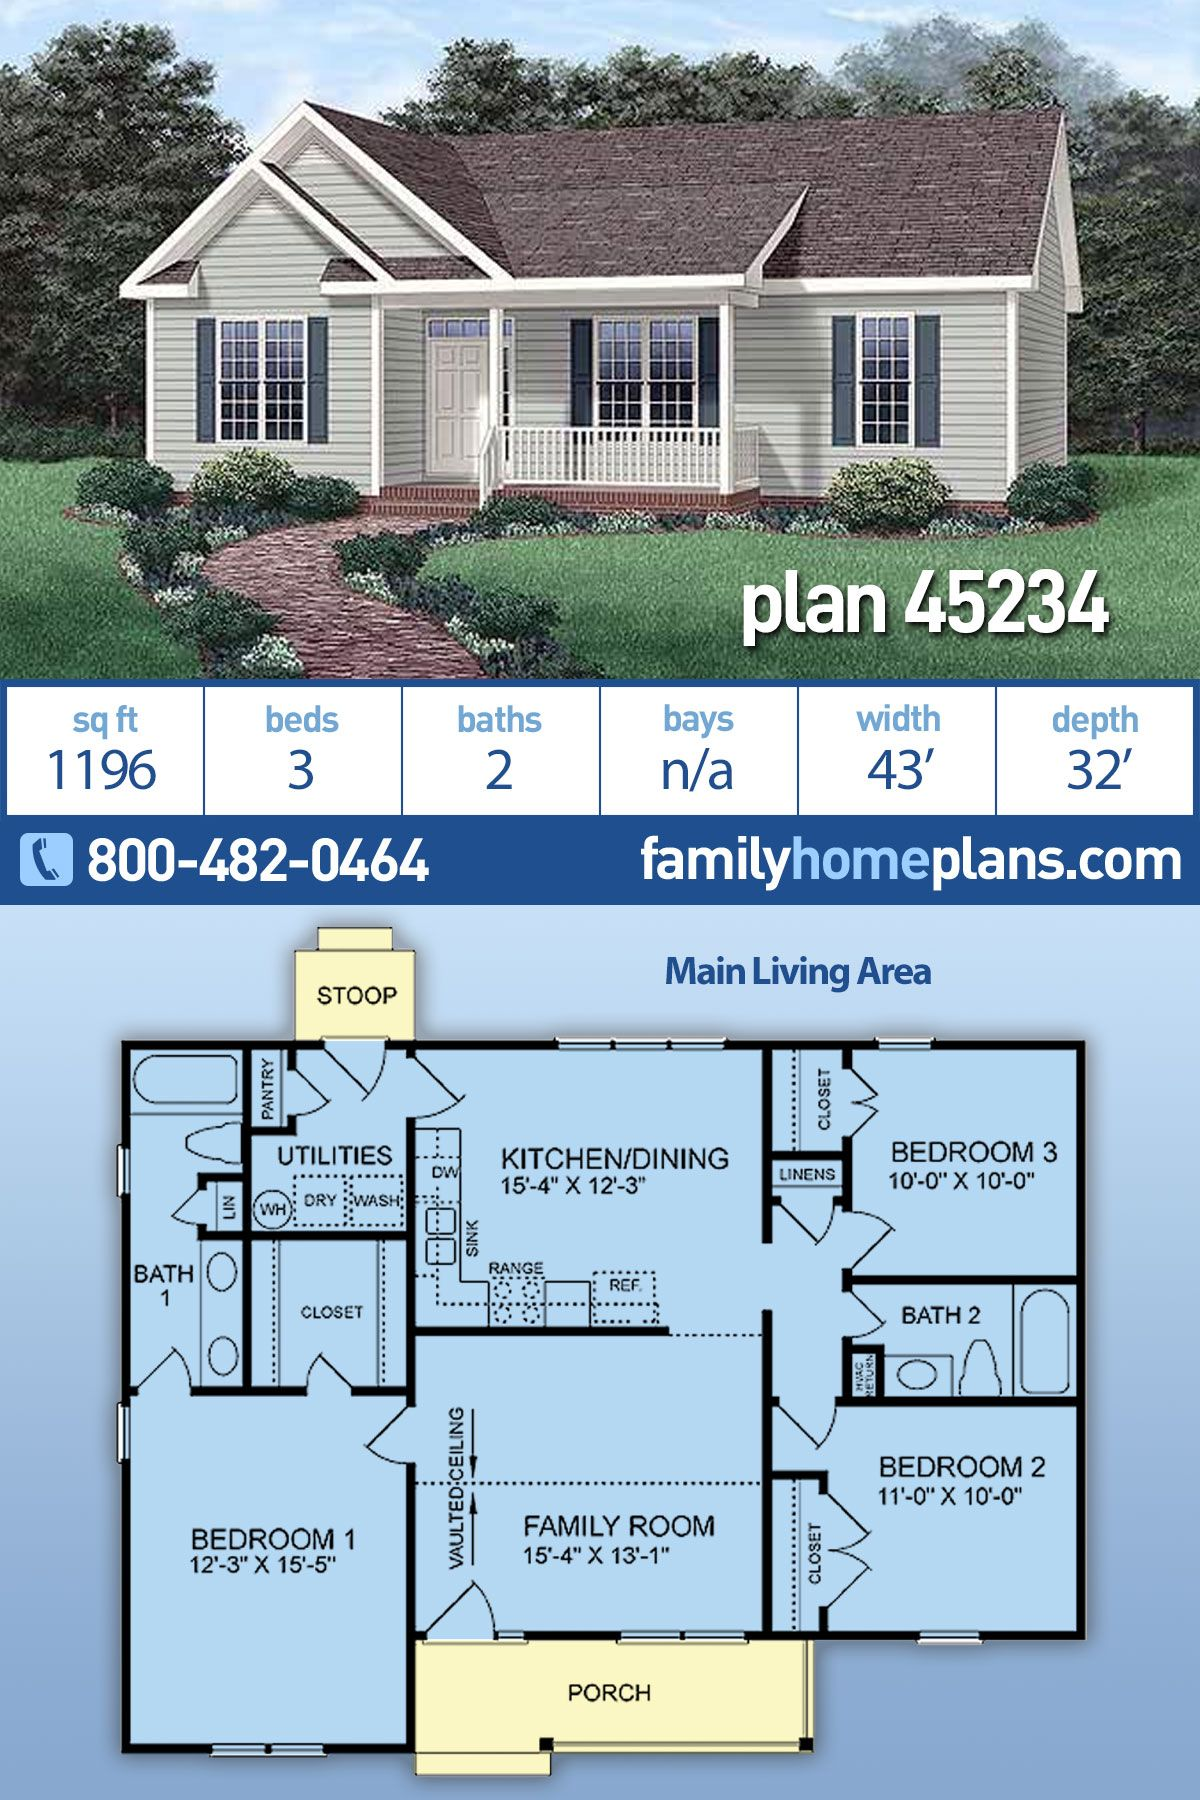 Photo of Efficient 3 Bedroom Home Plan #45234 at Family Home Plans Small House Plan Collection